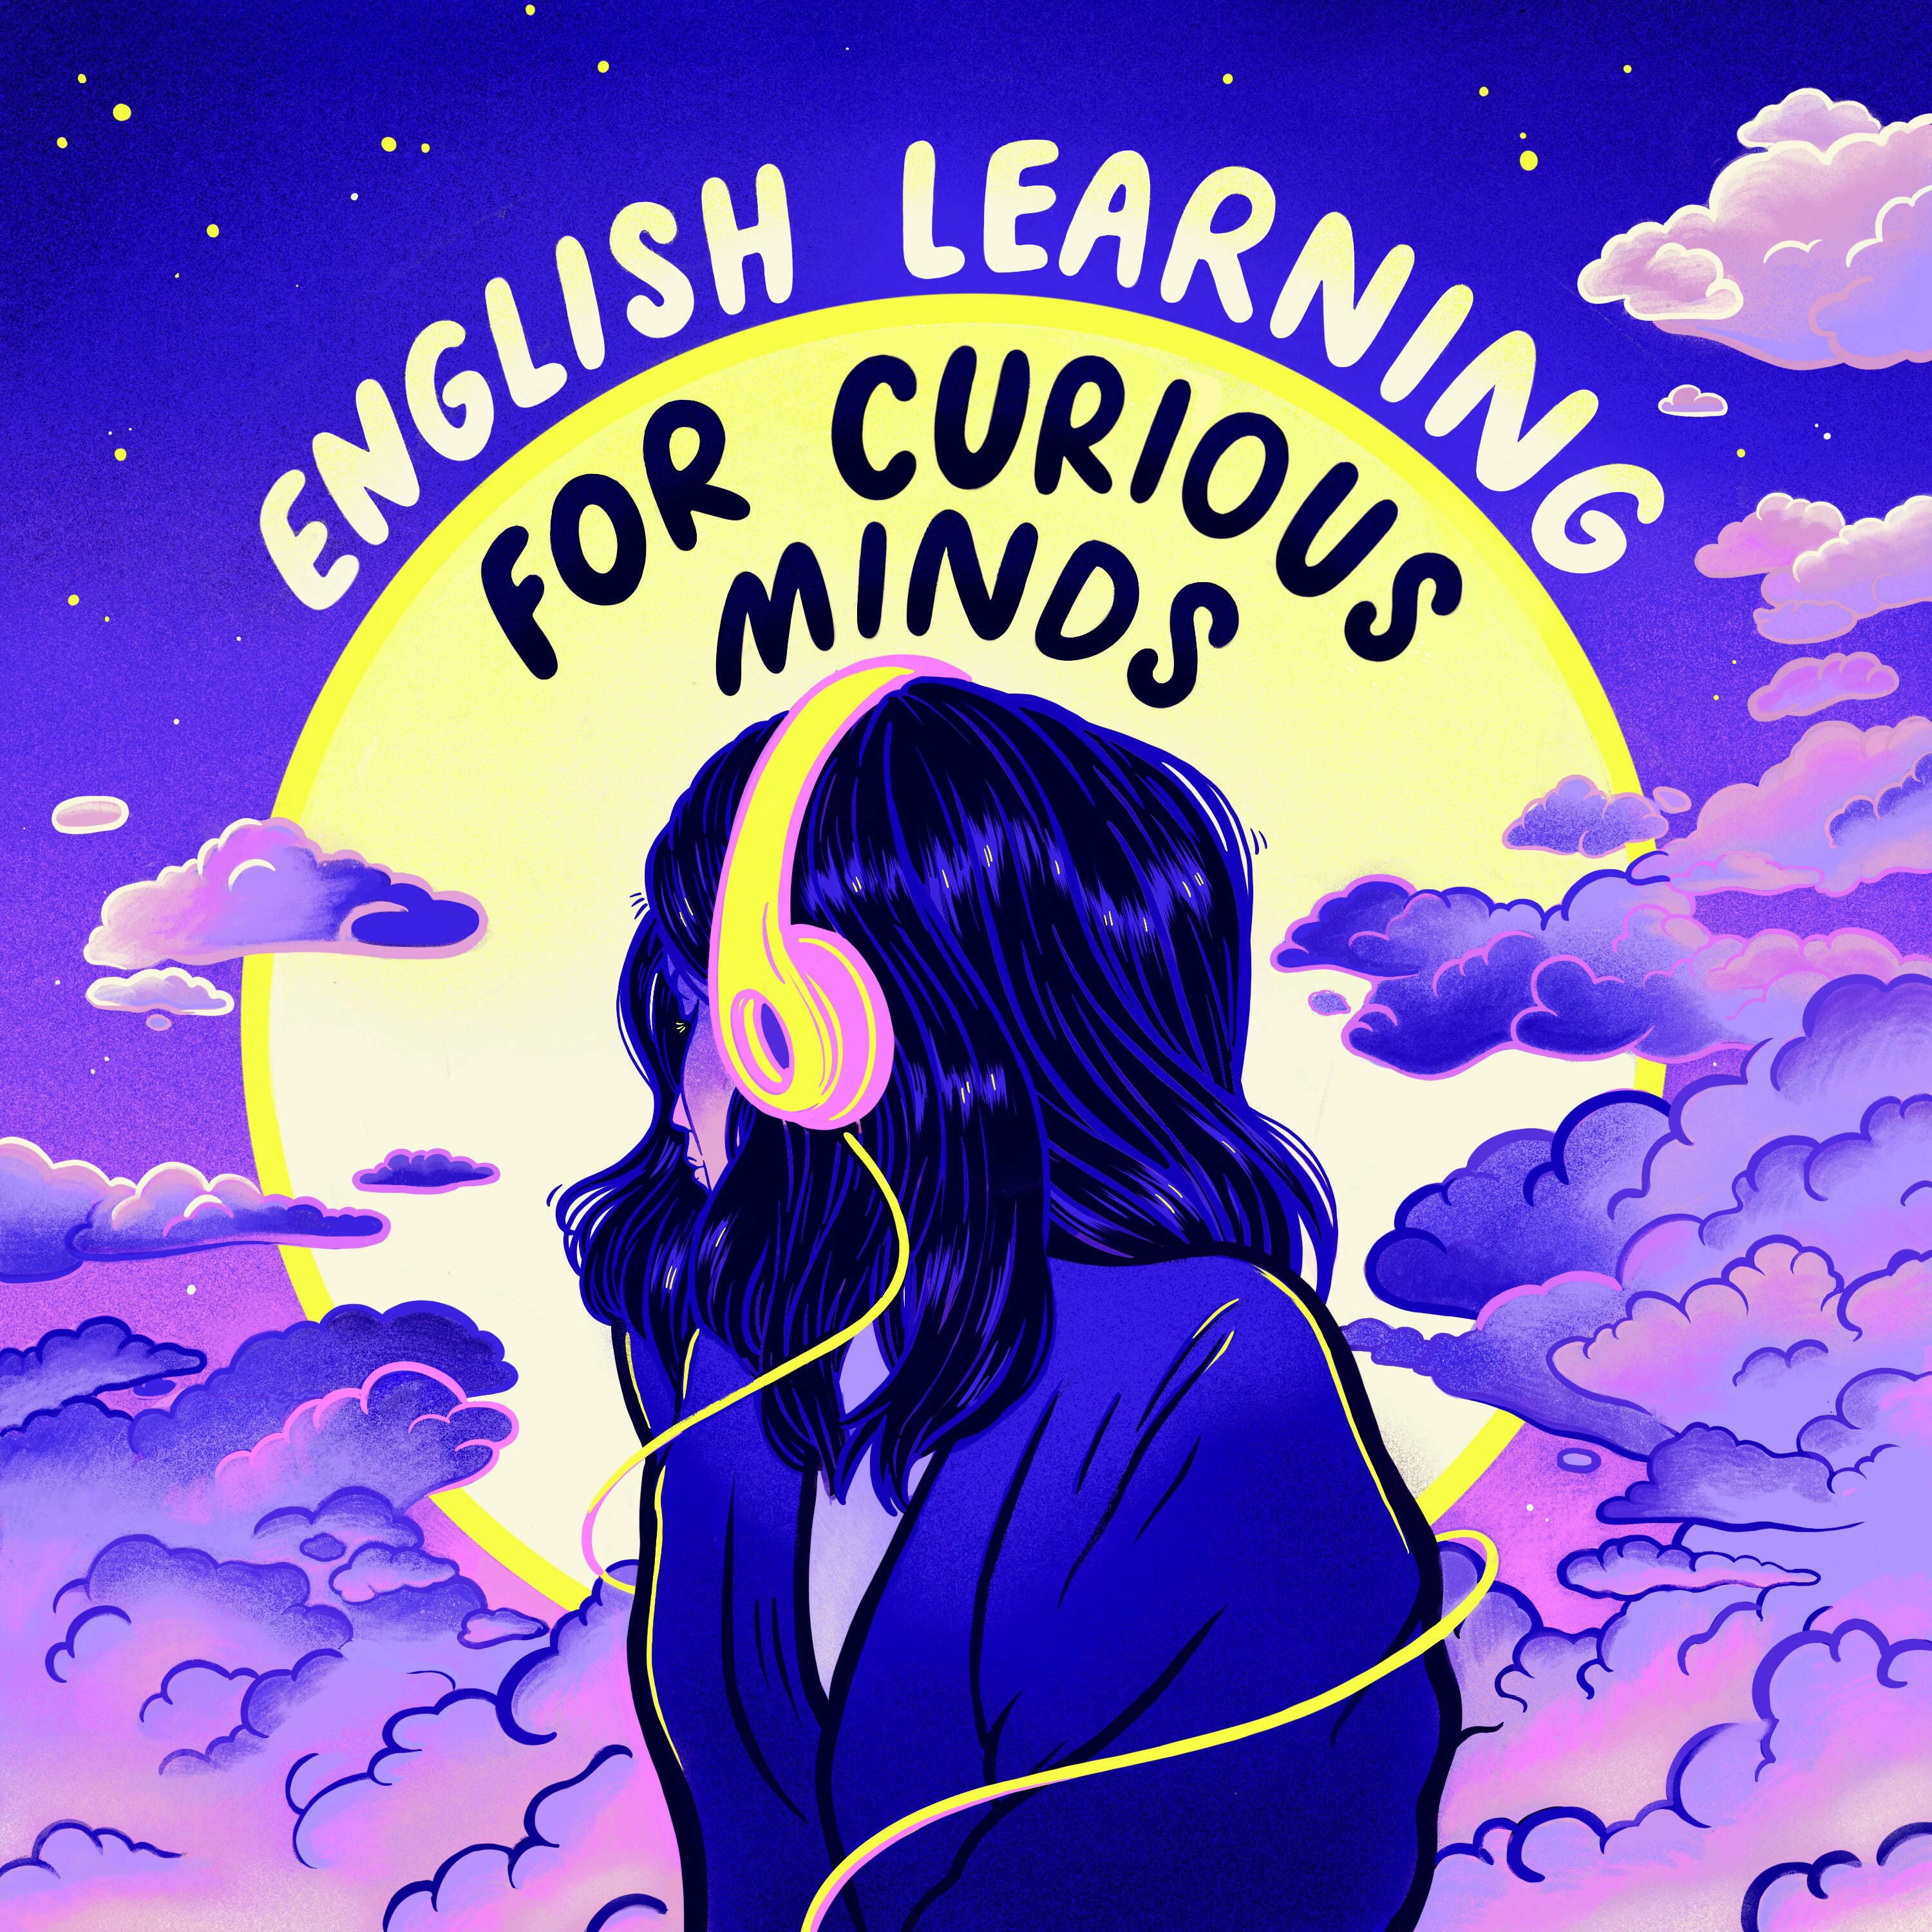 English Learning for Curious Minds